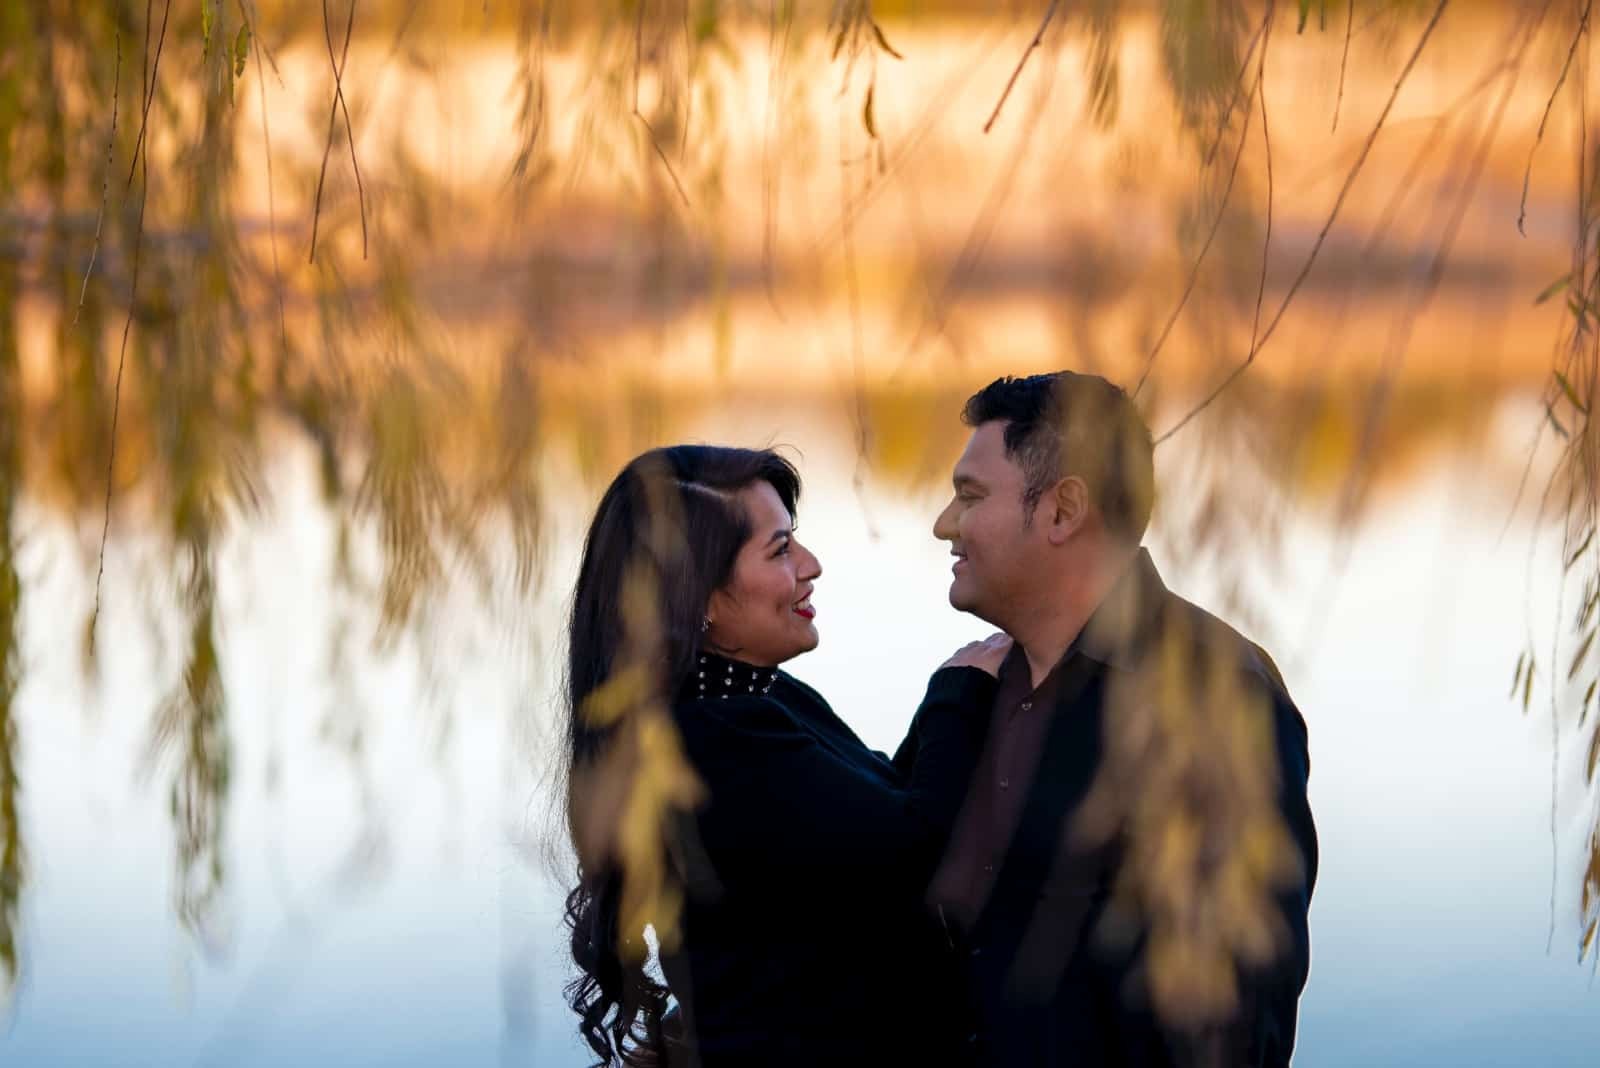 man and woman making eye contact while standing near water